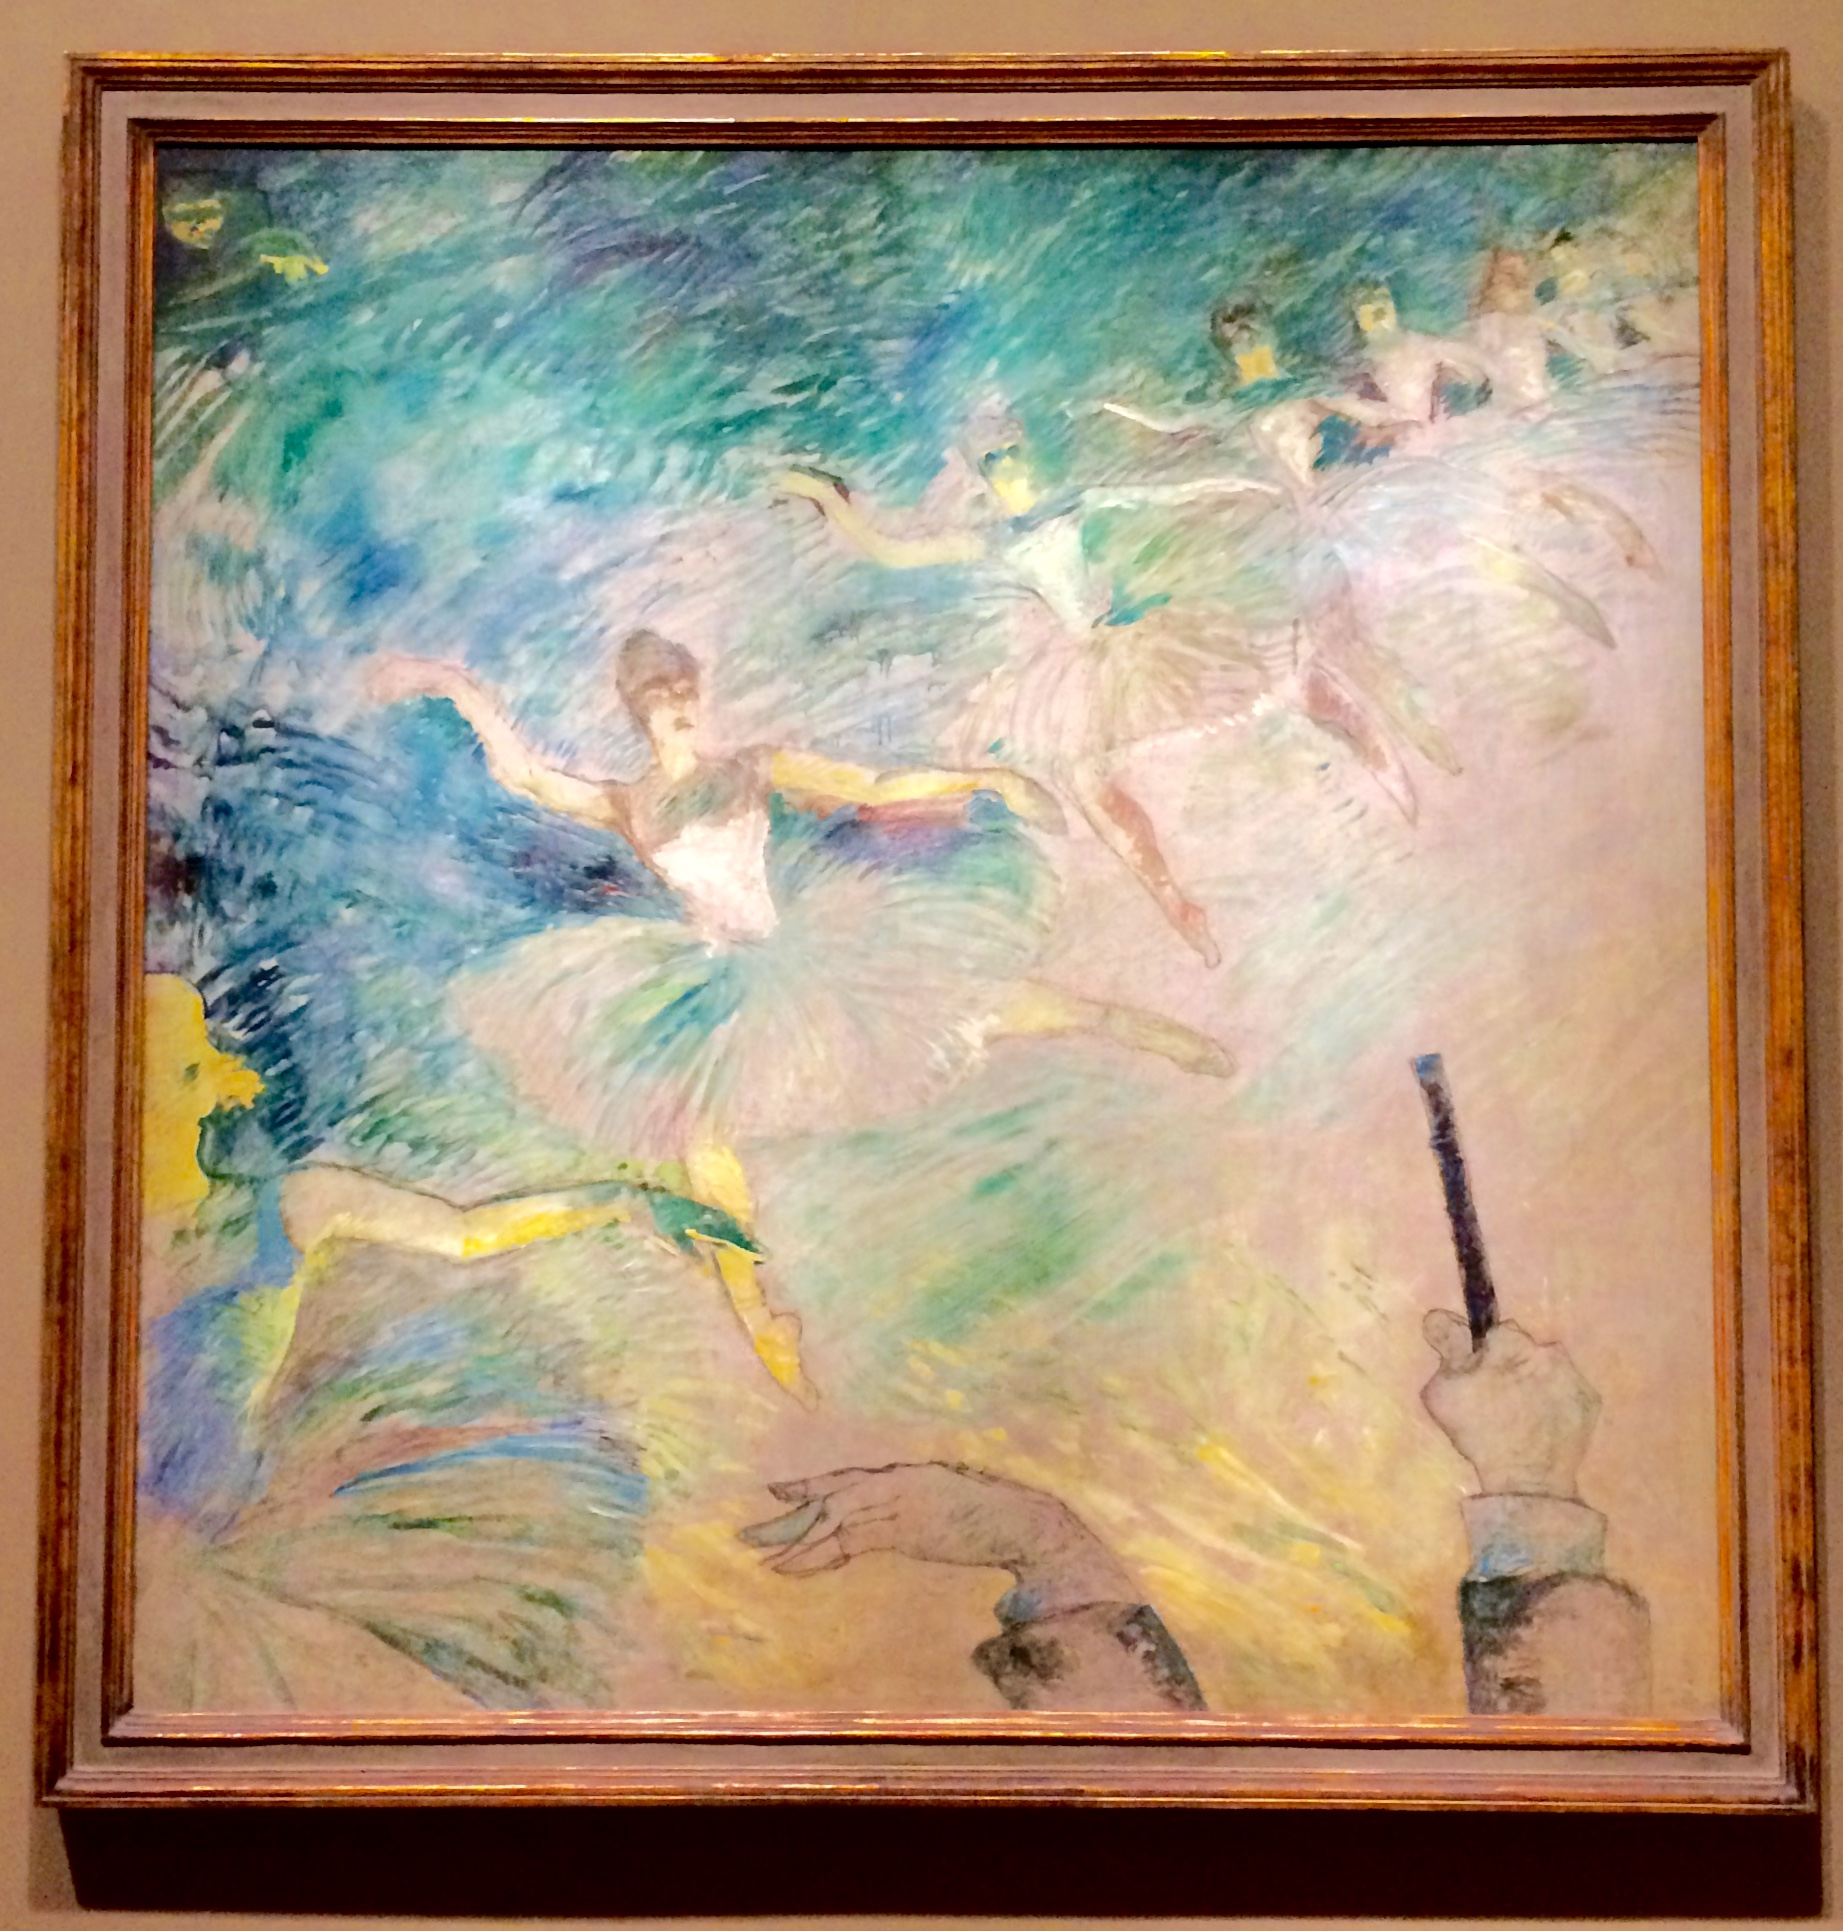 :: degas (I believe - didn't have time to take note since I was chasing Miss A around! ::